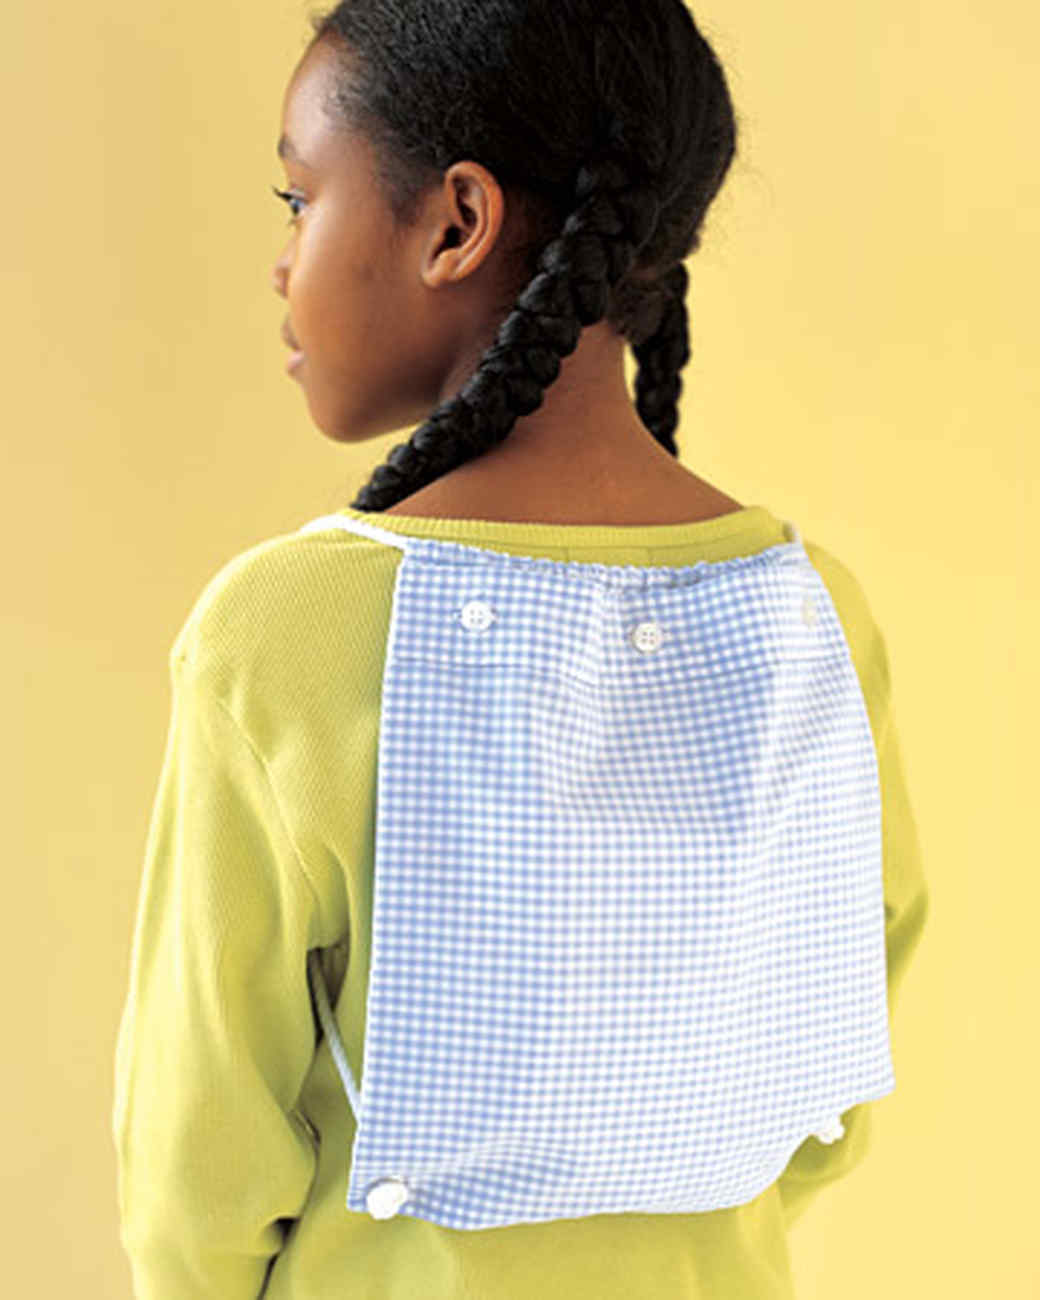 Sewing projects for kids martha stewart negle Choice Image